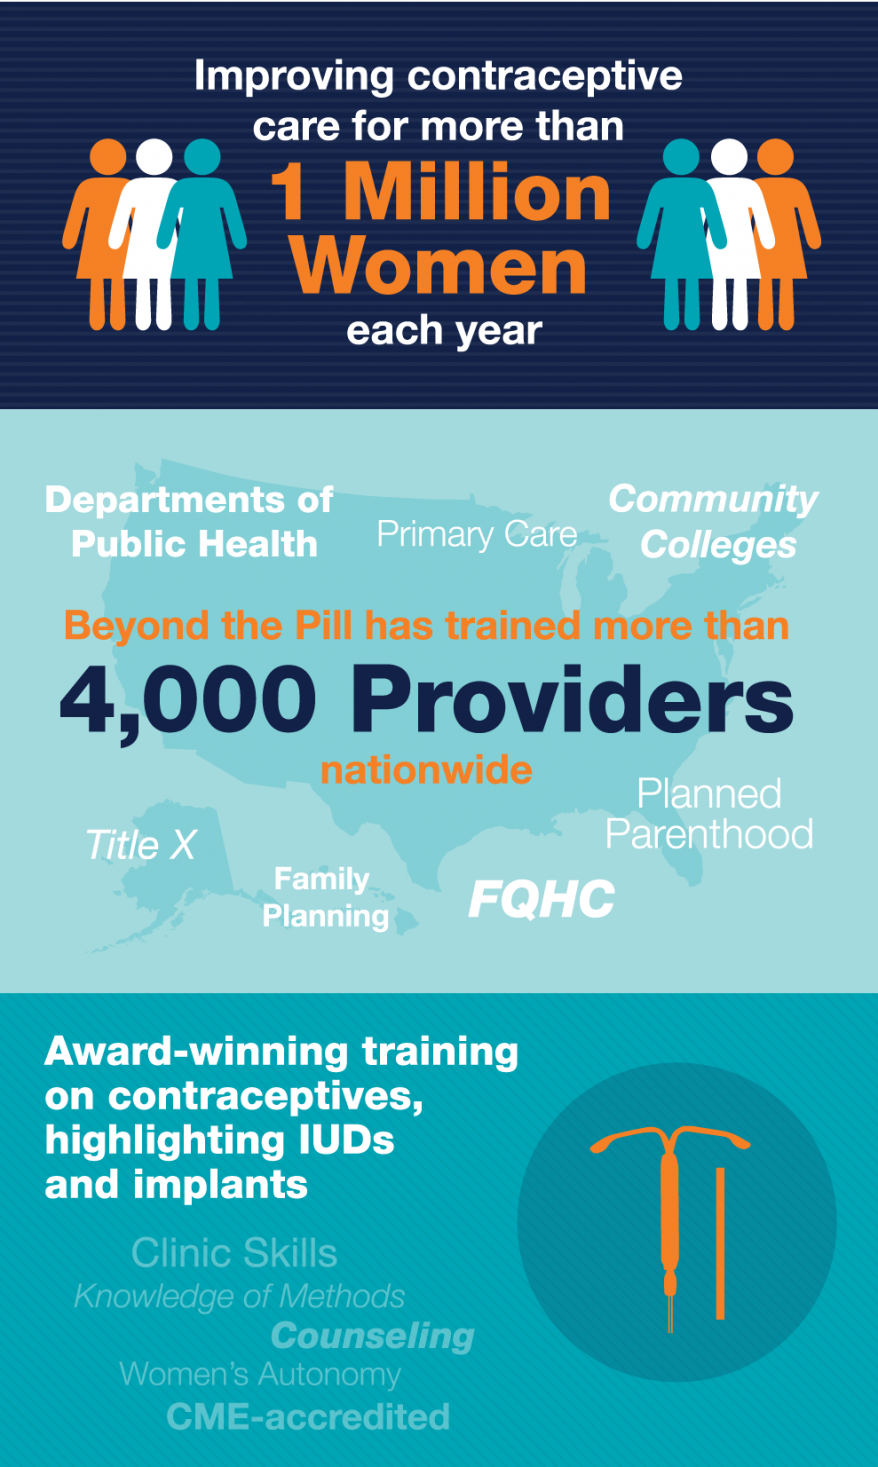 Improving contraceptive care for more than 1 million women each year. Beyond the Pill has trained more than 4,000 providers nationwide. Award-winning training on contraceptives, highlighting IUDs and implants.